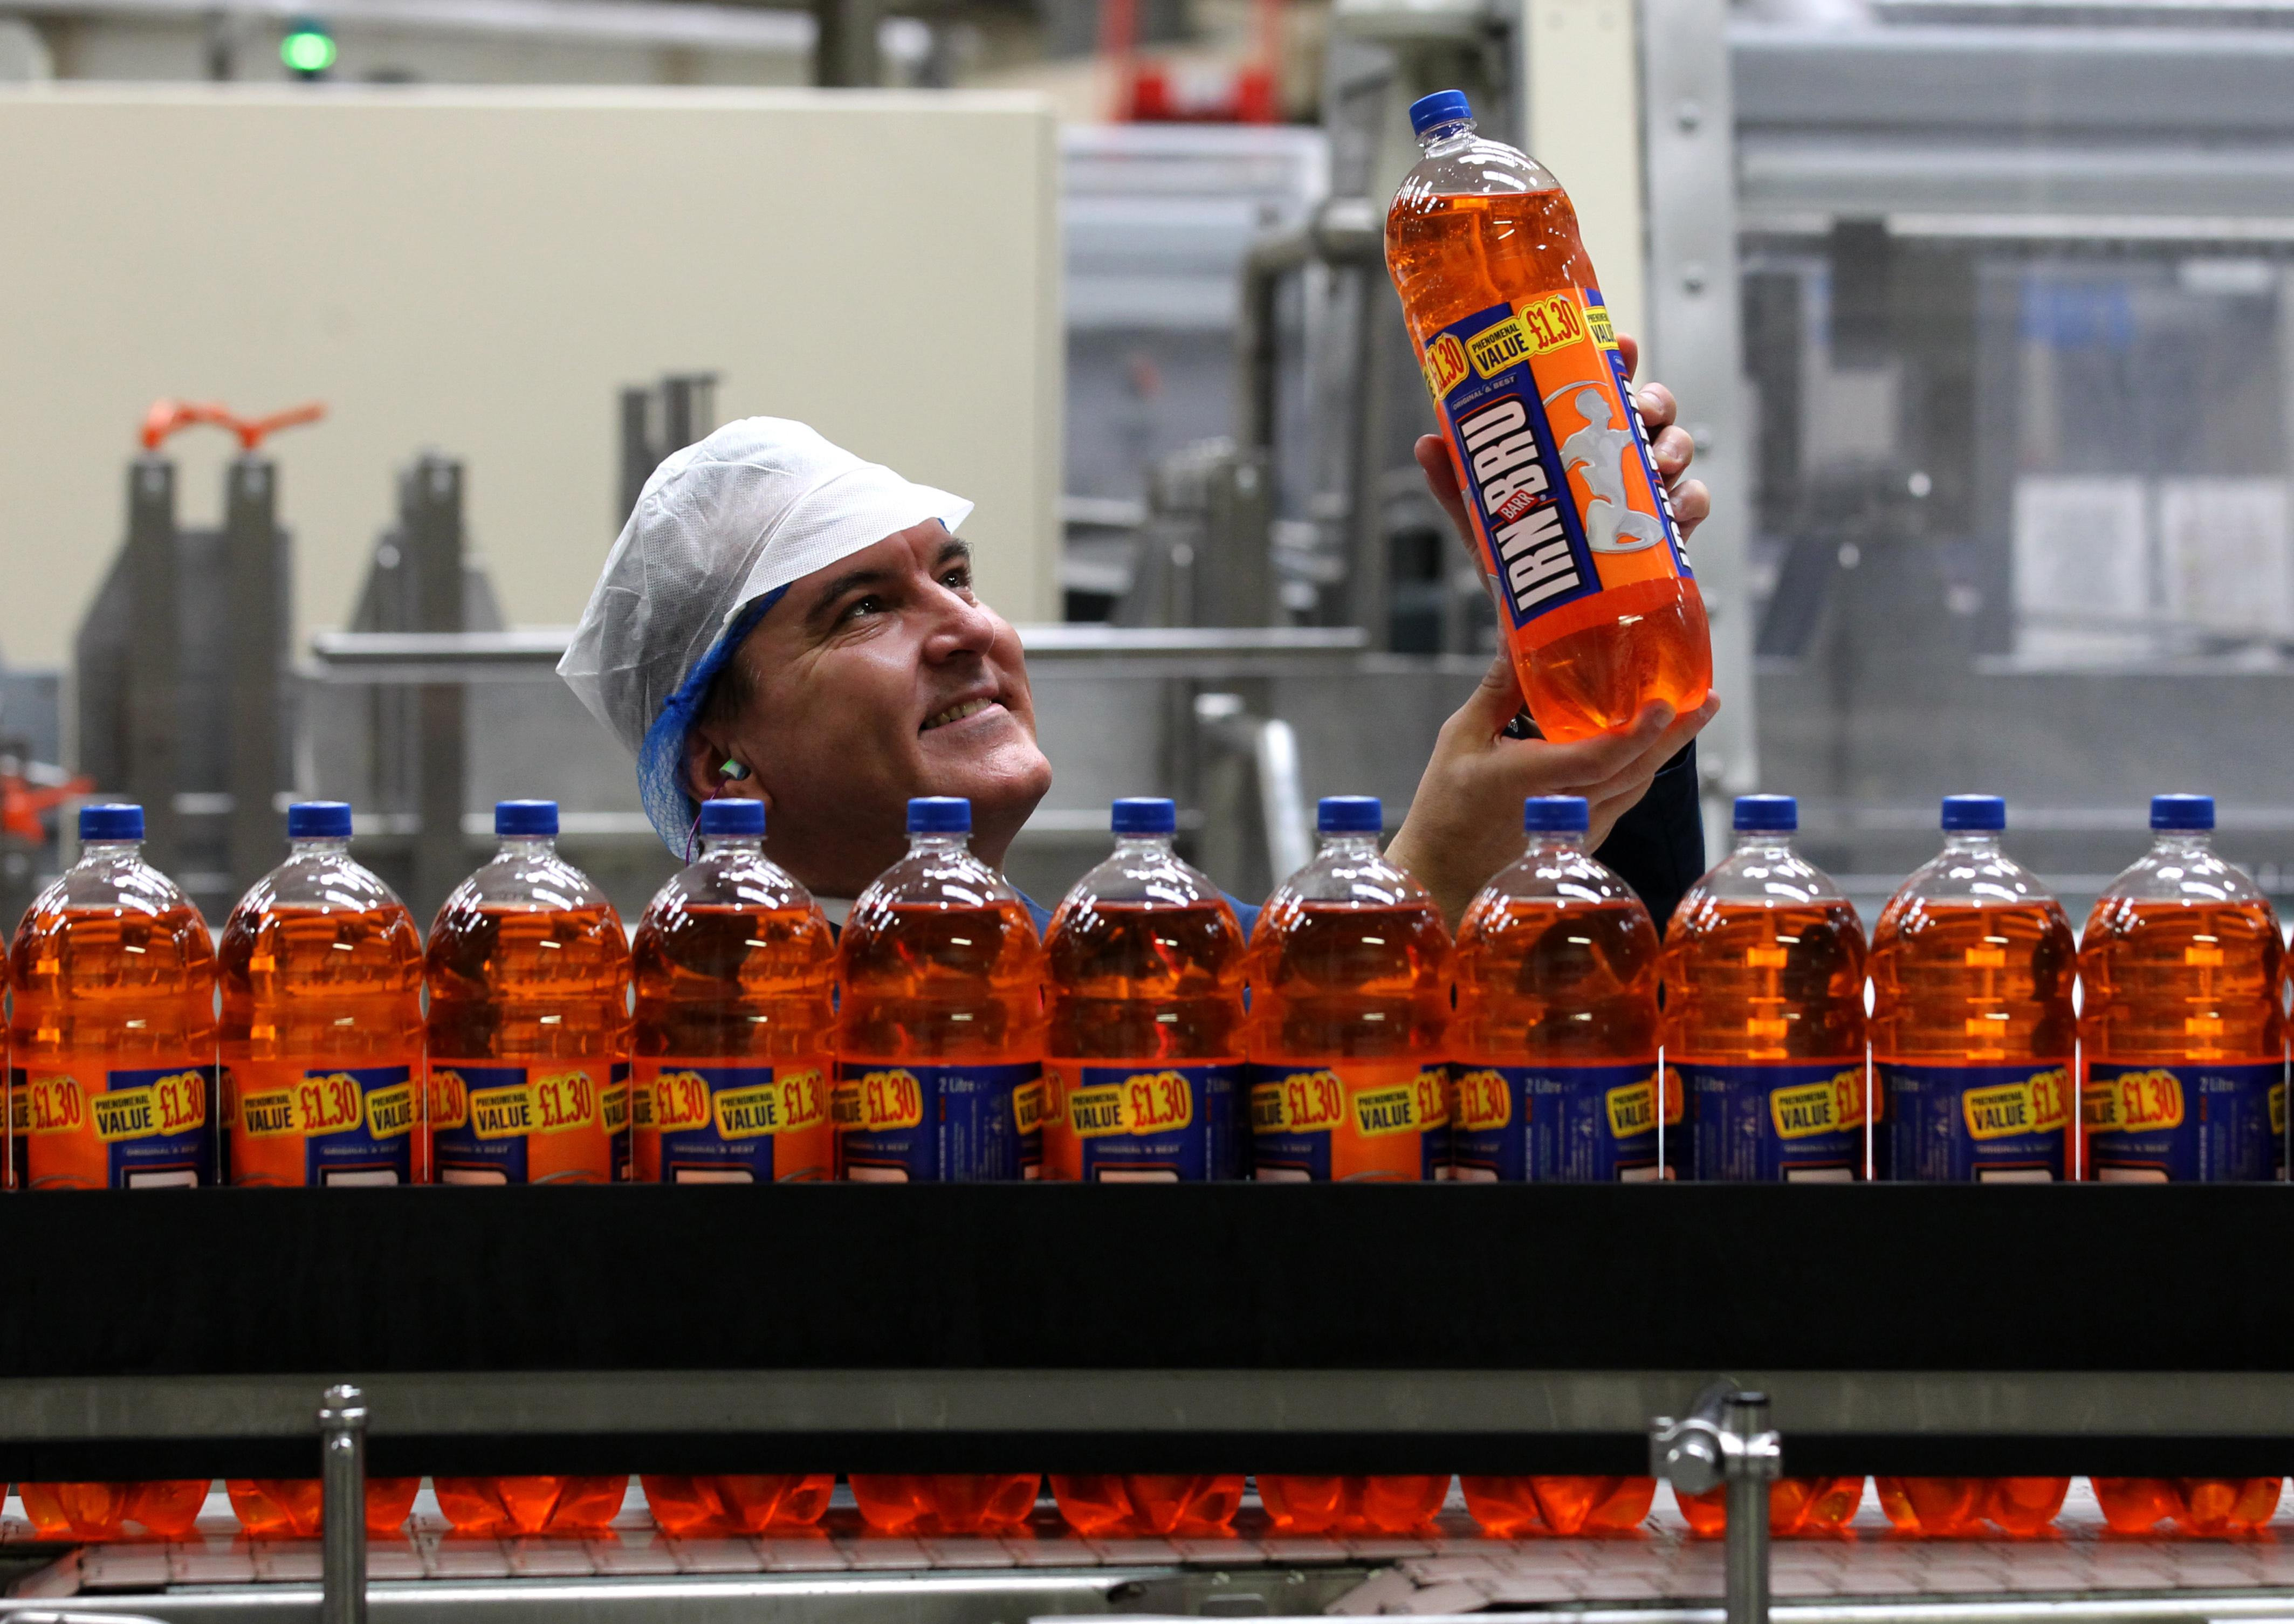 Irn-Bru is still going to be available to buy in shops